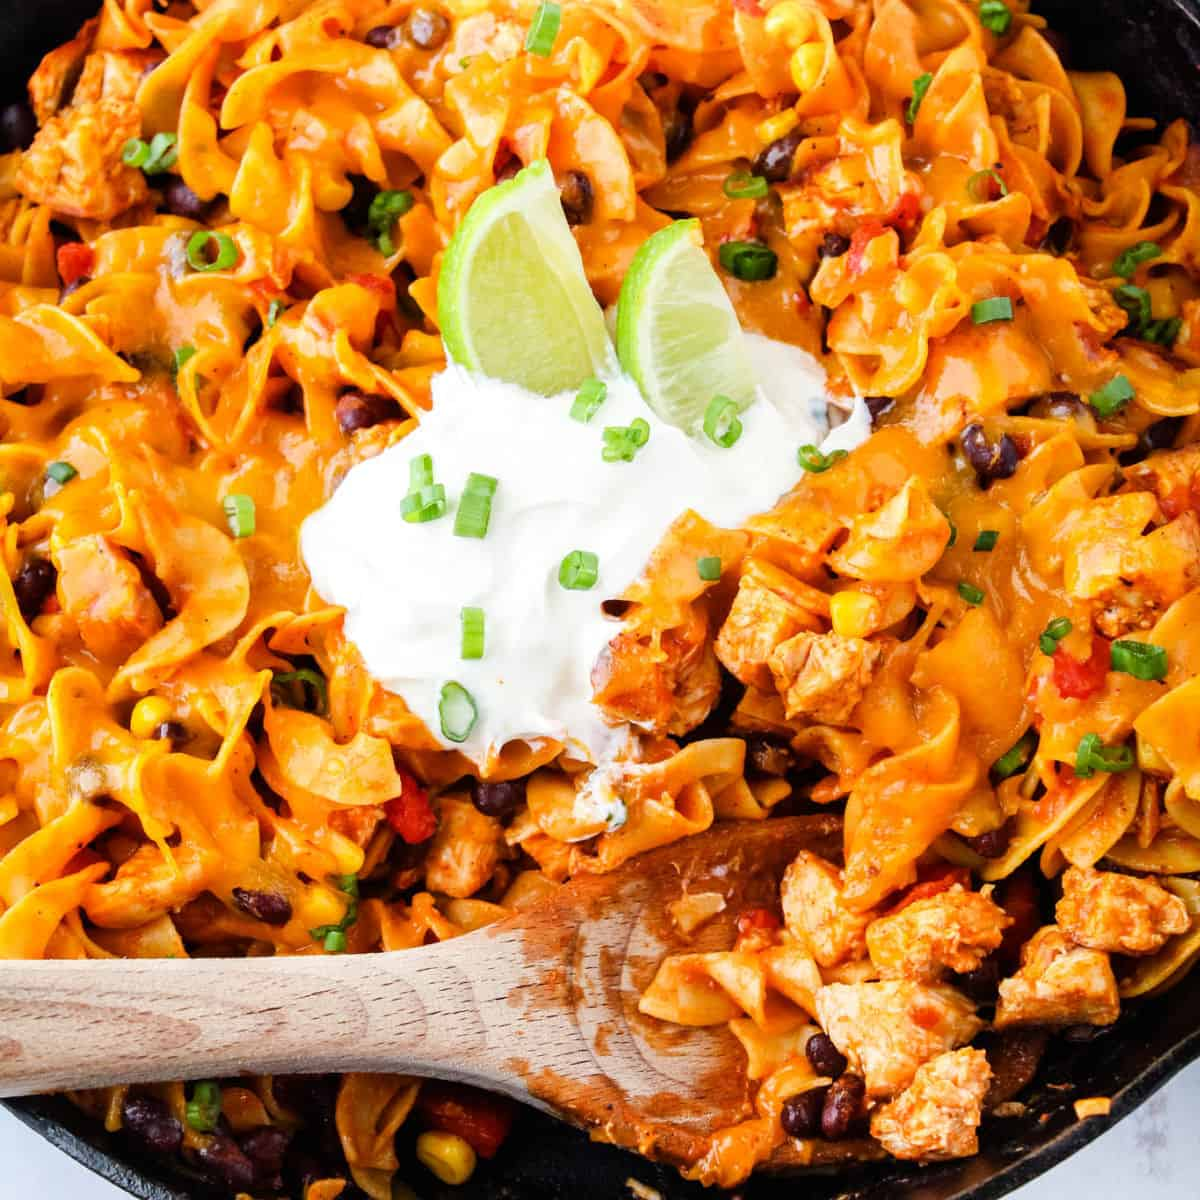 square image of enchilada pasta in a cast iron skillet with a wooden spoon